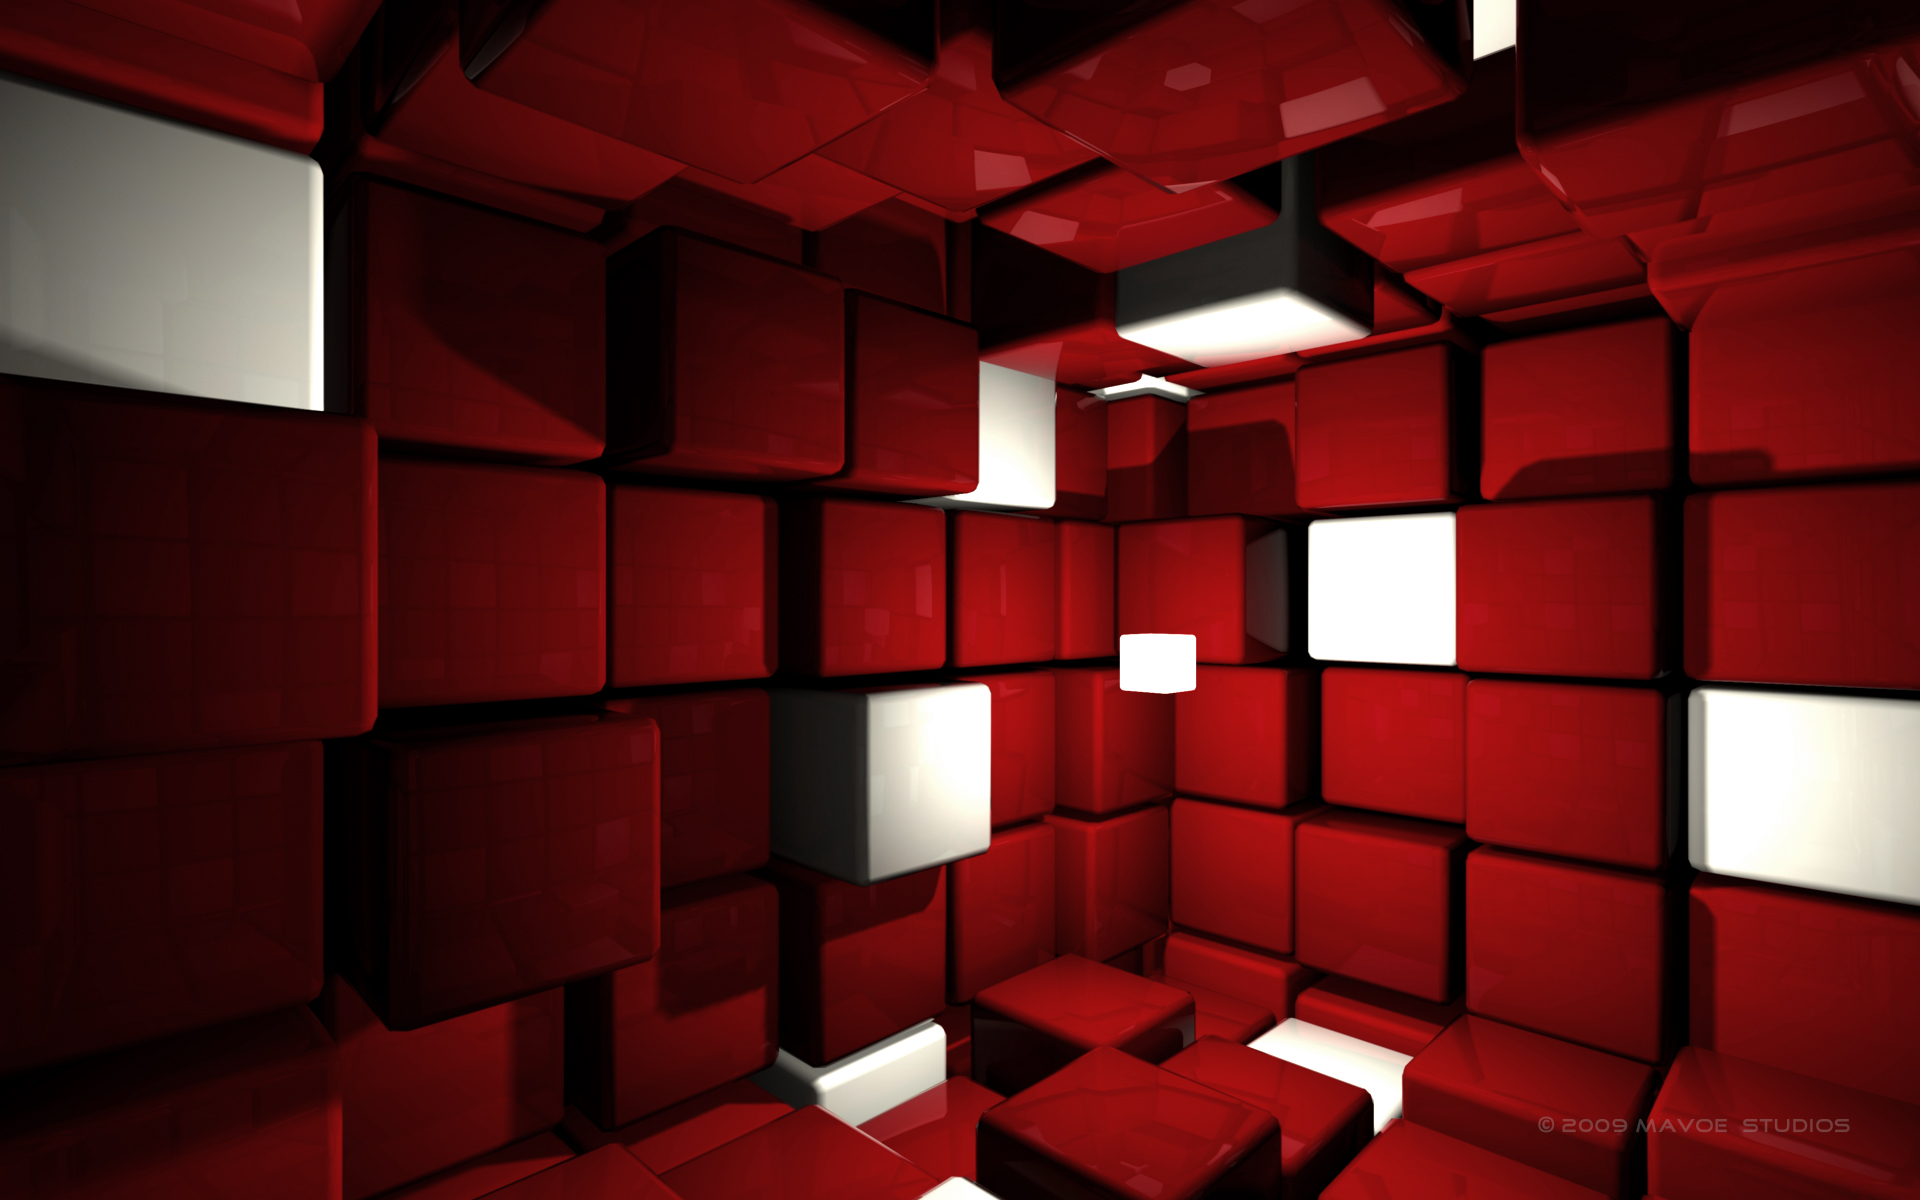 cube room 3d abstract cube red room whit 1876 hd wallpapers